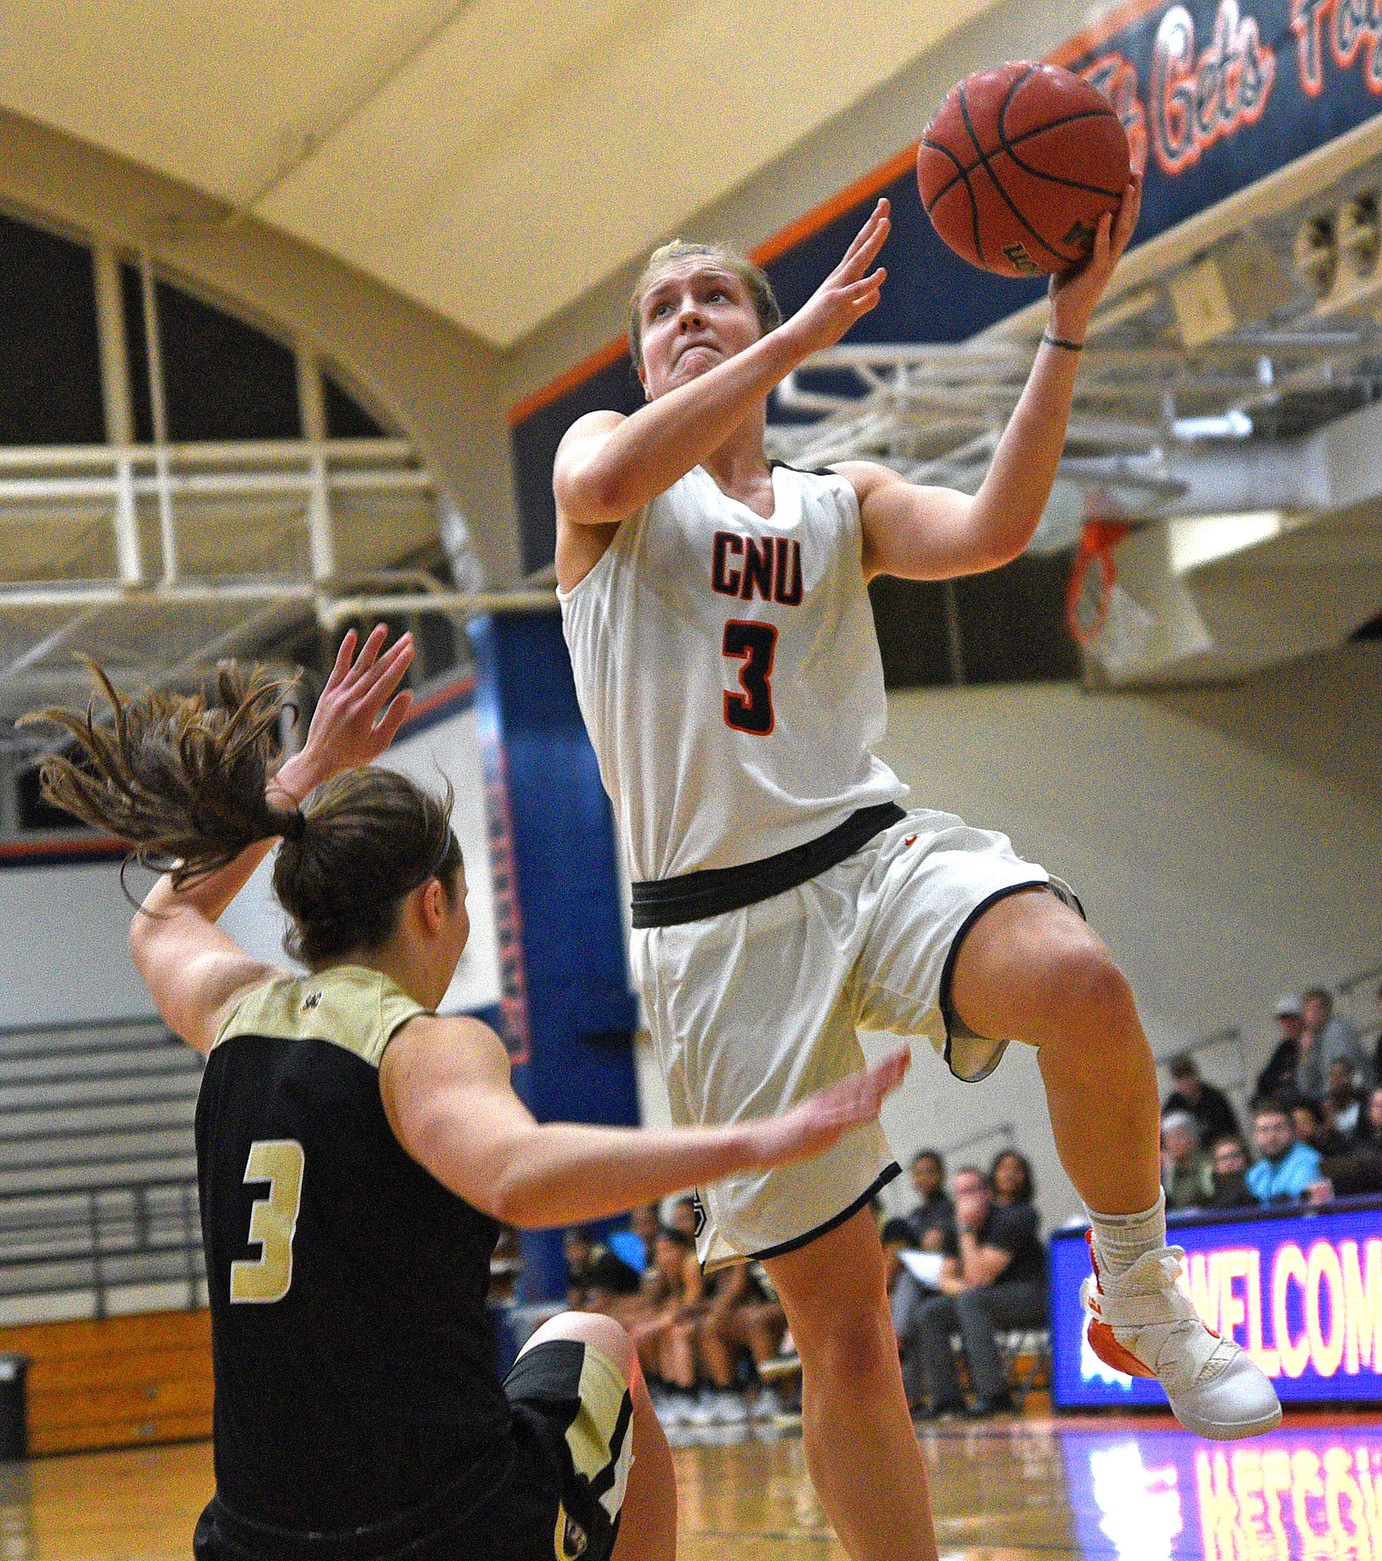 C-N's missed chances stymie upset bid of No. 18 Anderson